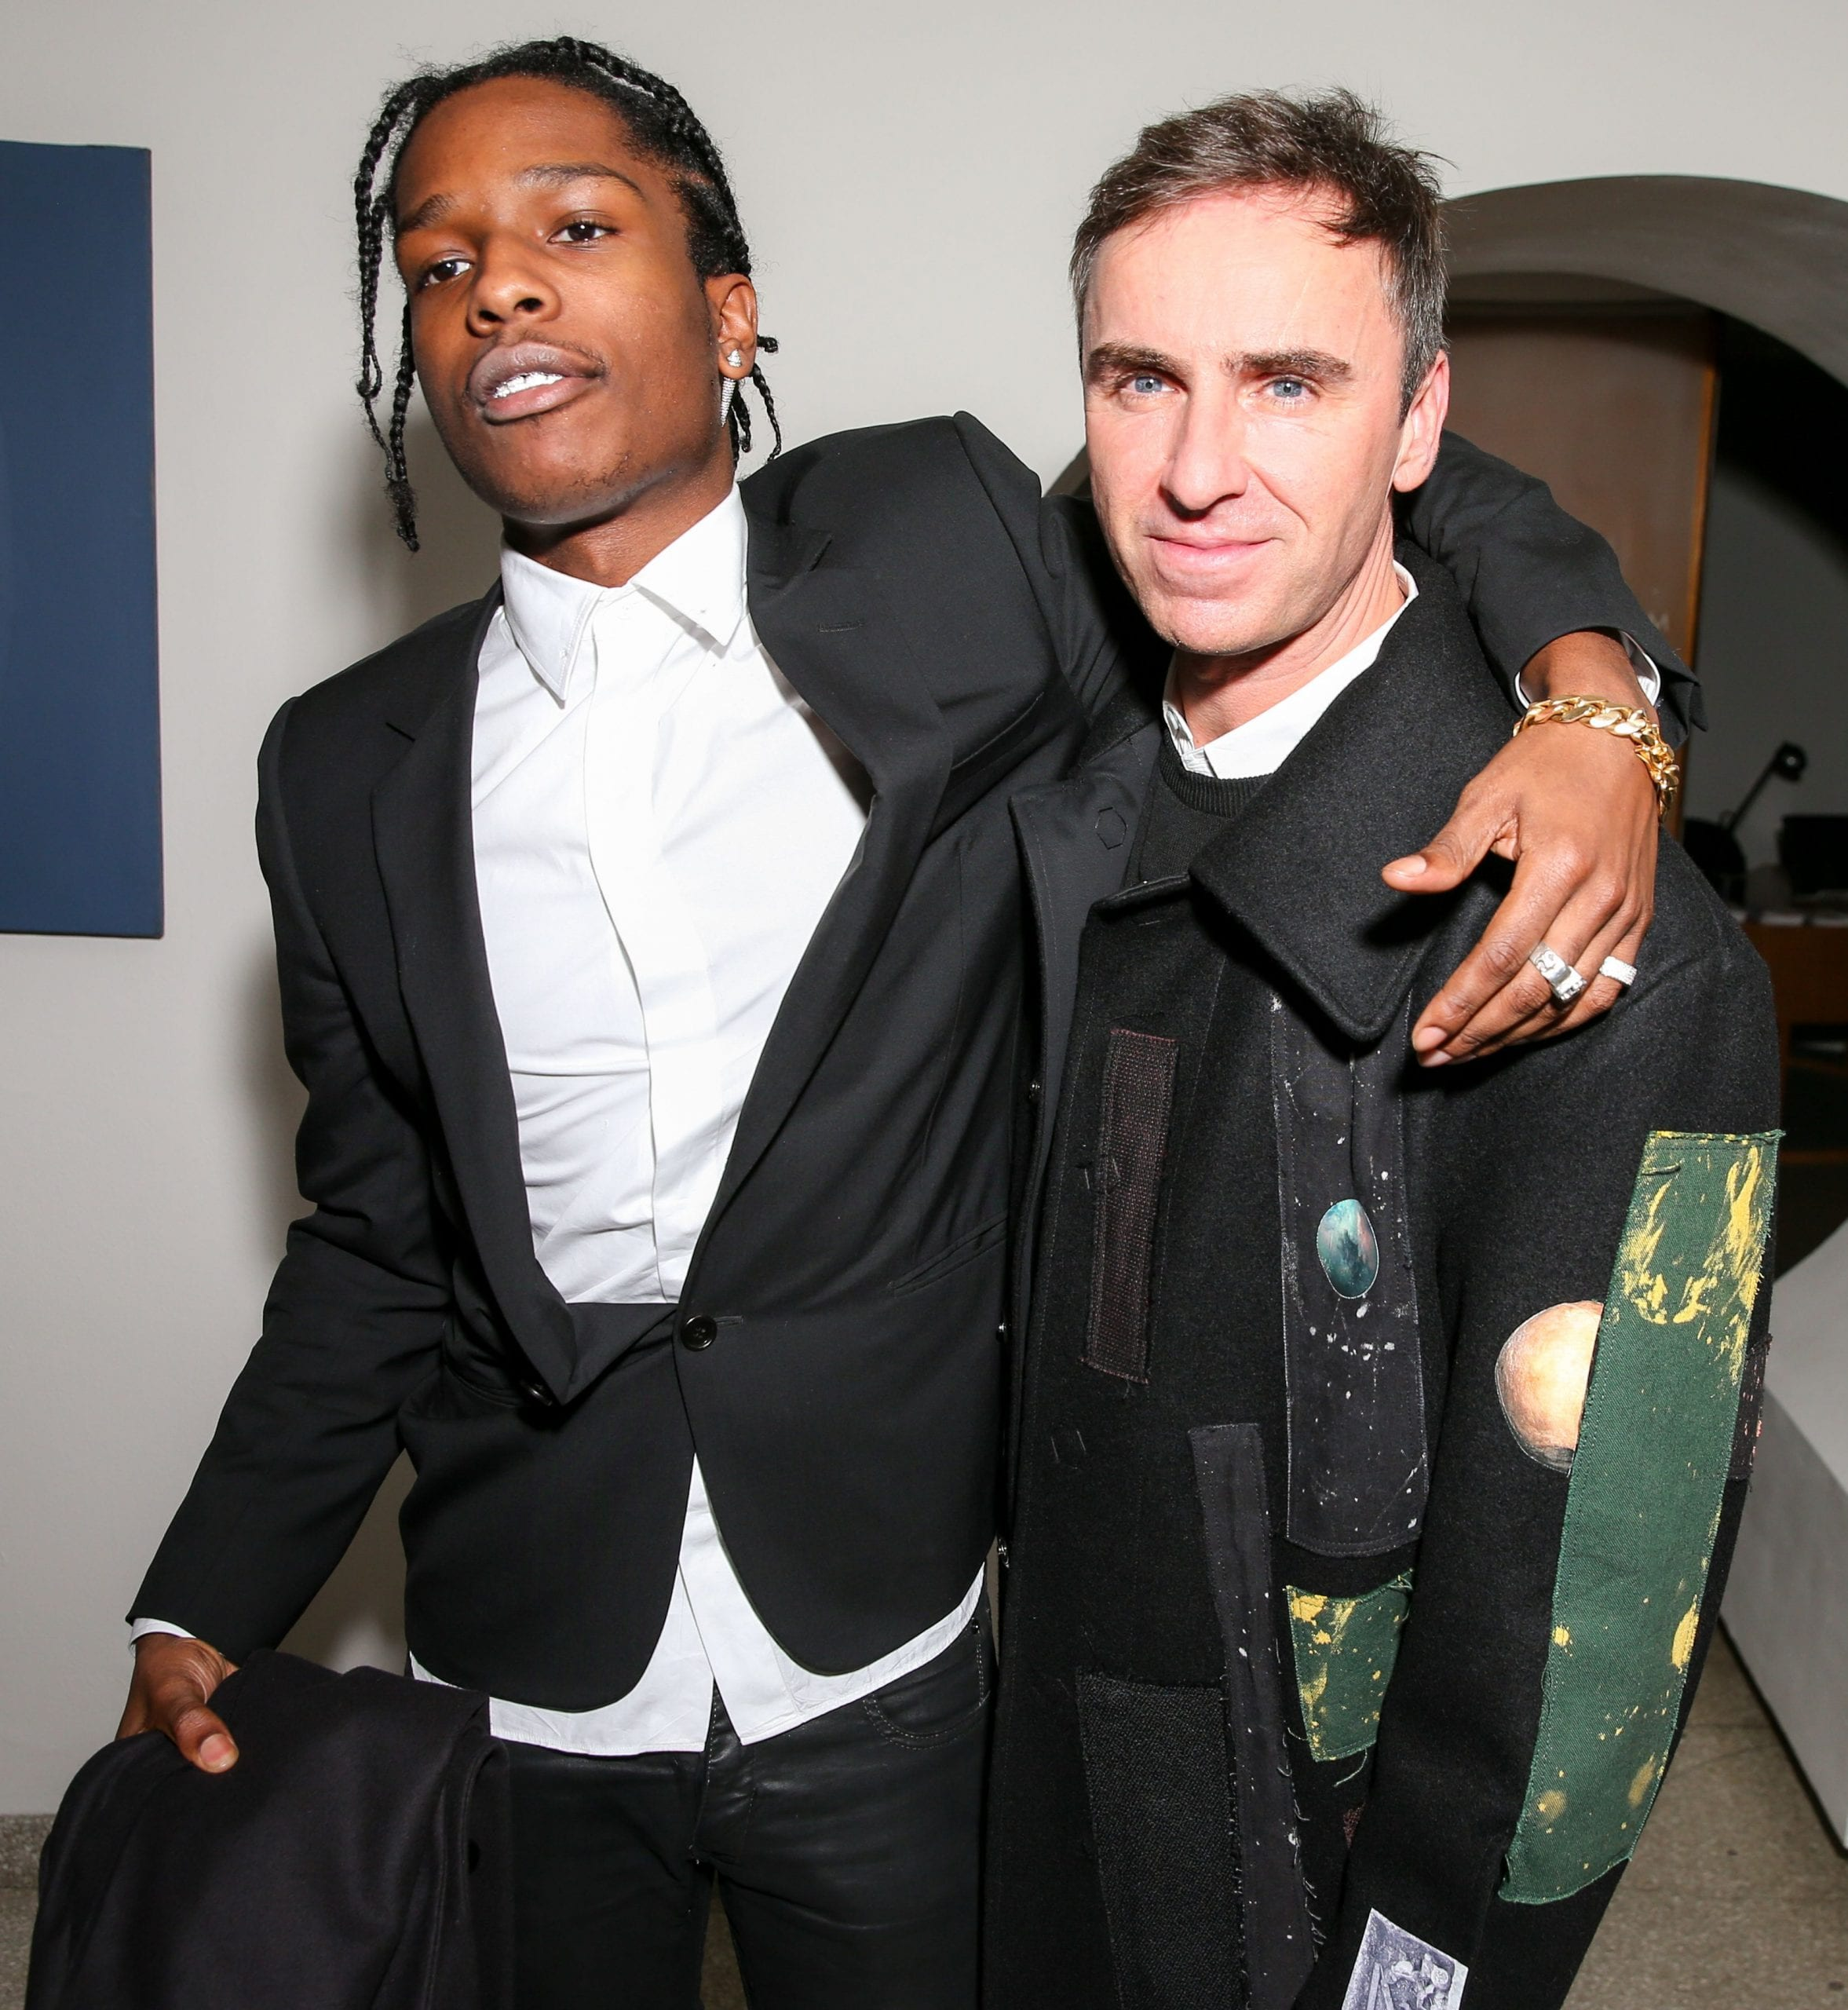 What is the net worth of Asap Rocky